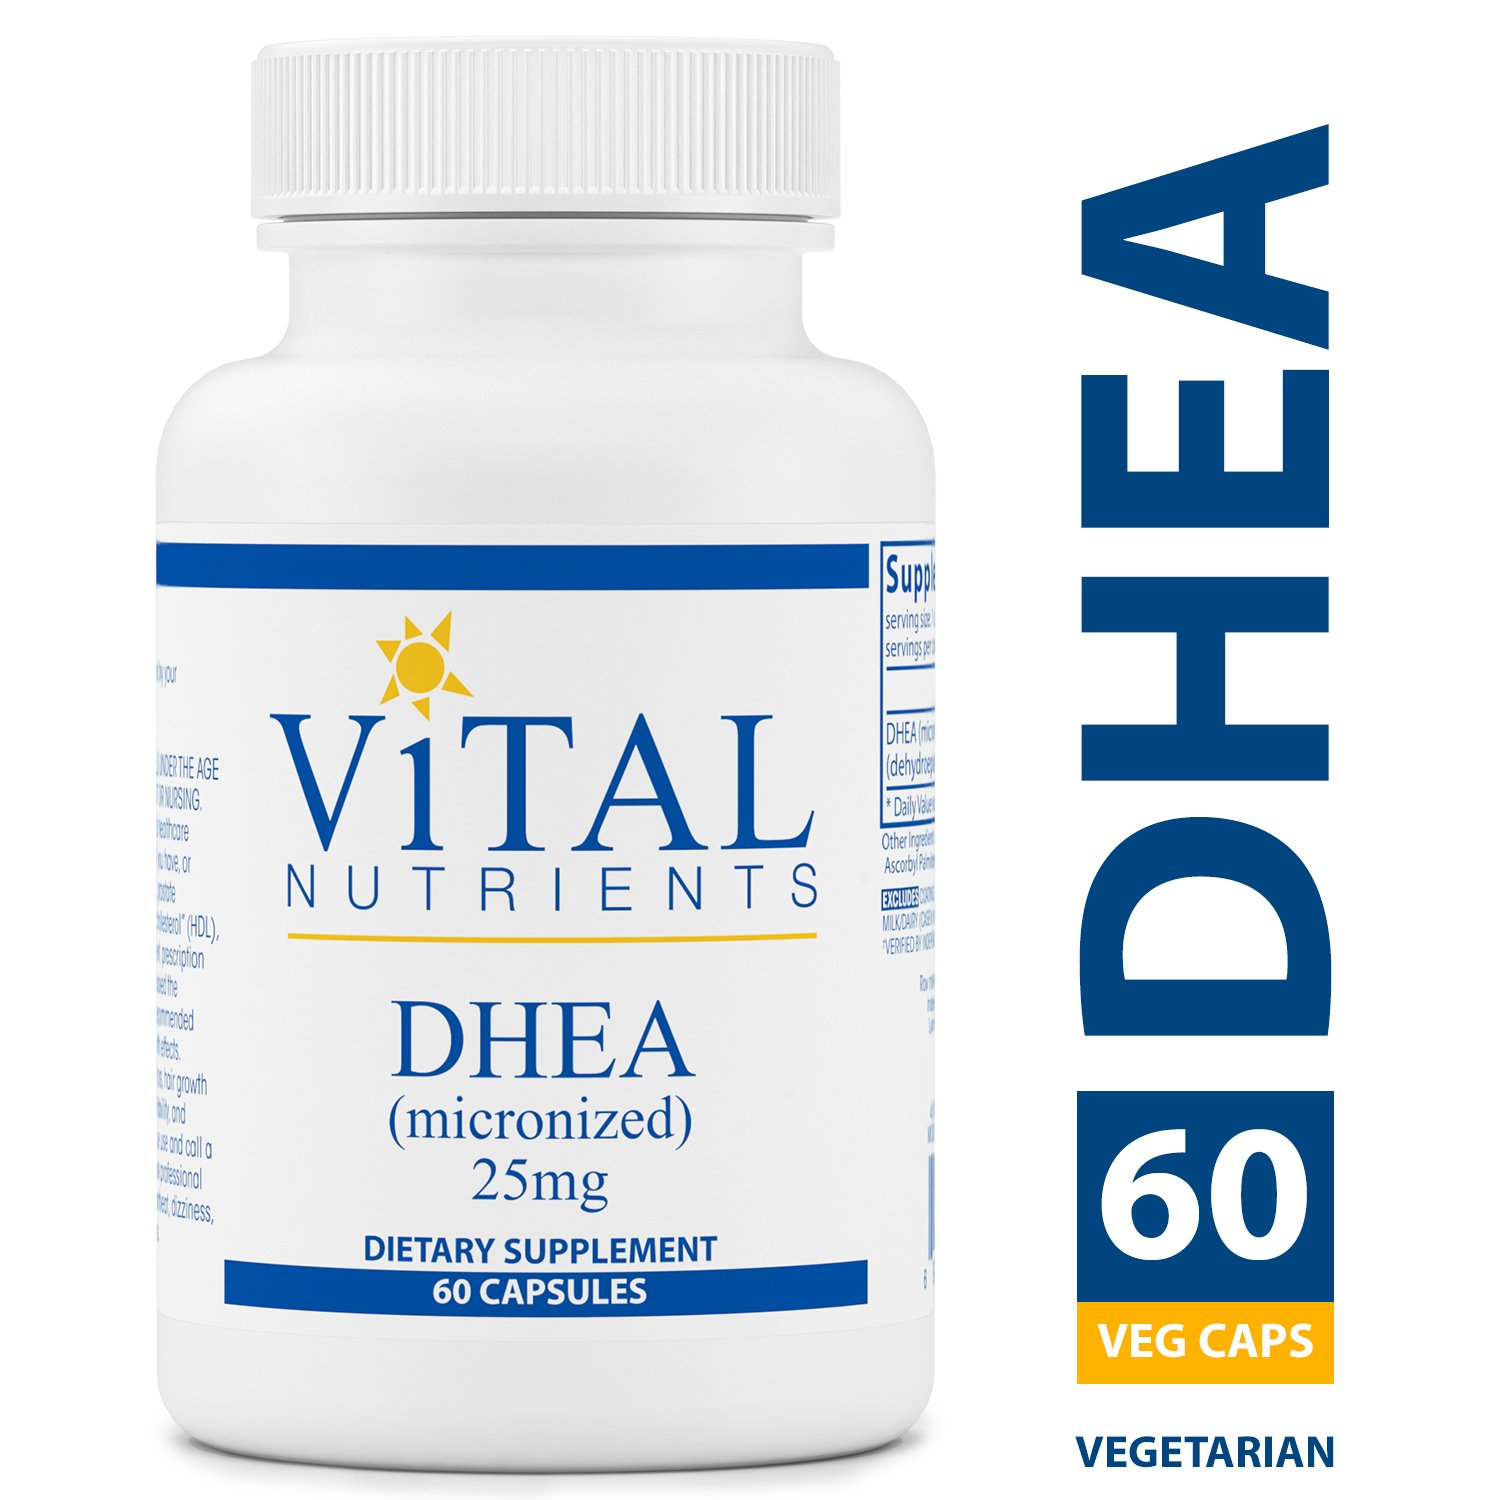 Vital Nutrients - DHEA (Micronized) 25 mg - Supports Metabolism, Hormone Levels and Energy Levels - 60 Vegetarian Capsules per Bottle